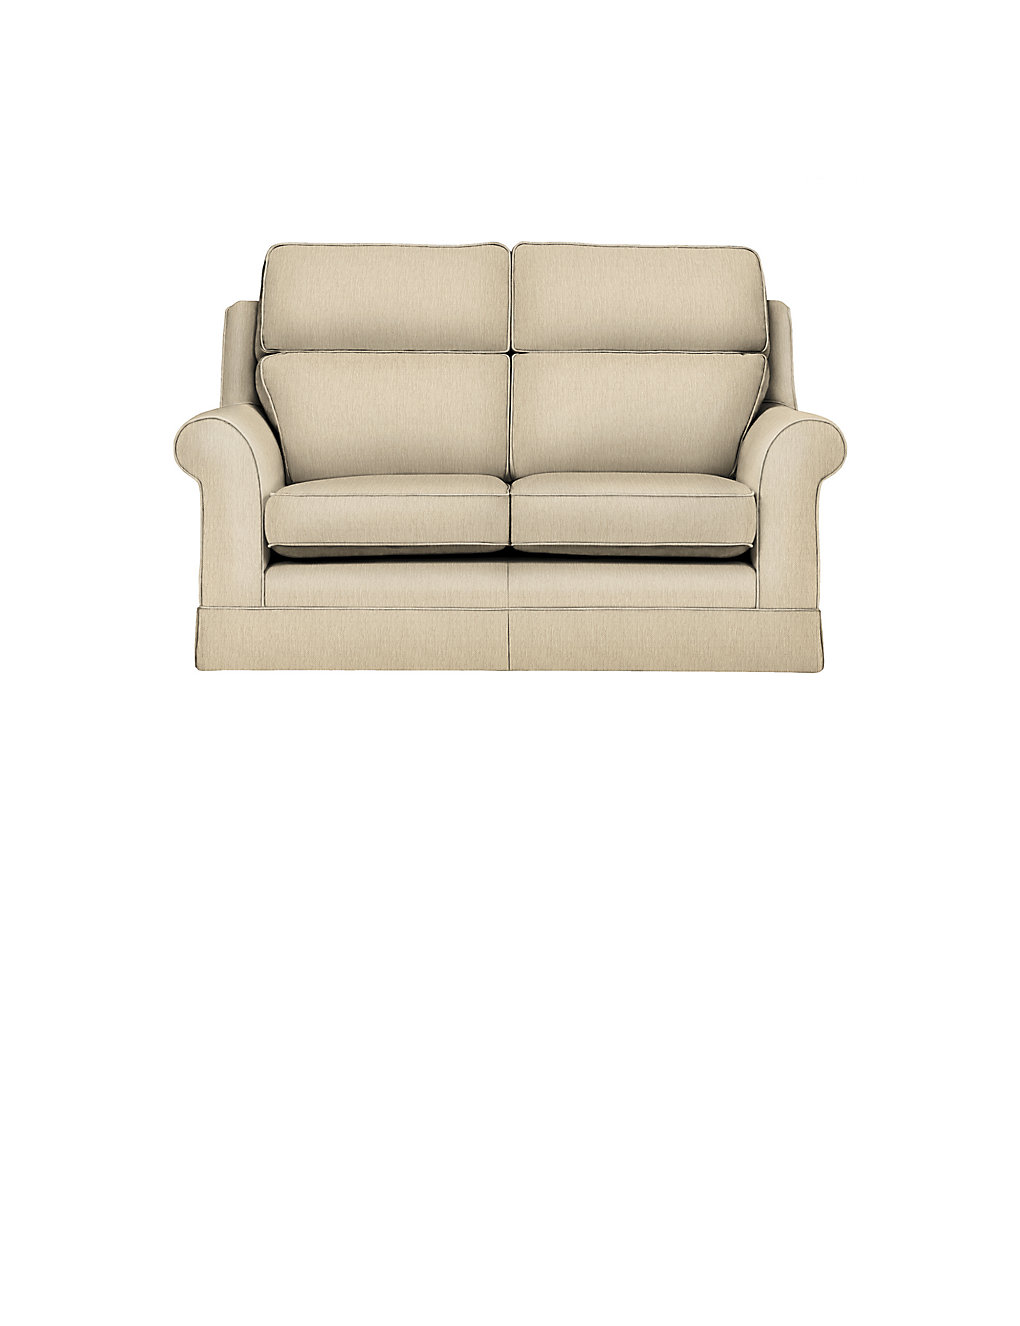 Colour by numbers richmond - The Richmond High Back Compact Sofa